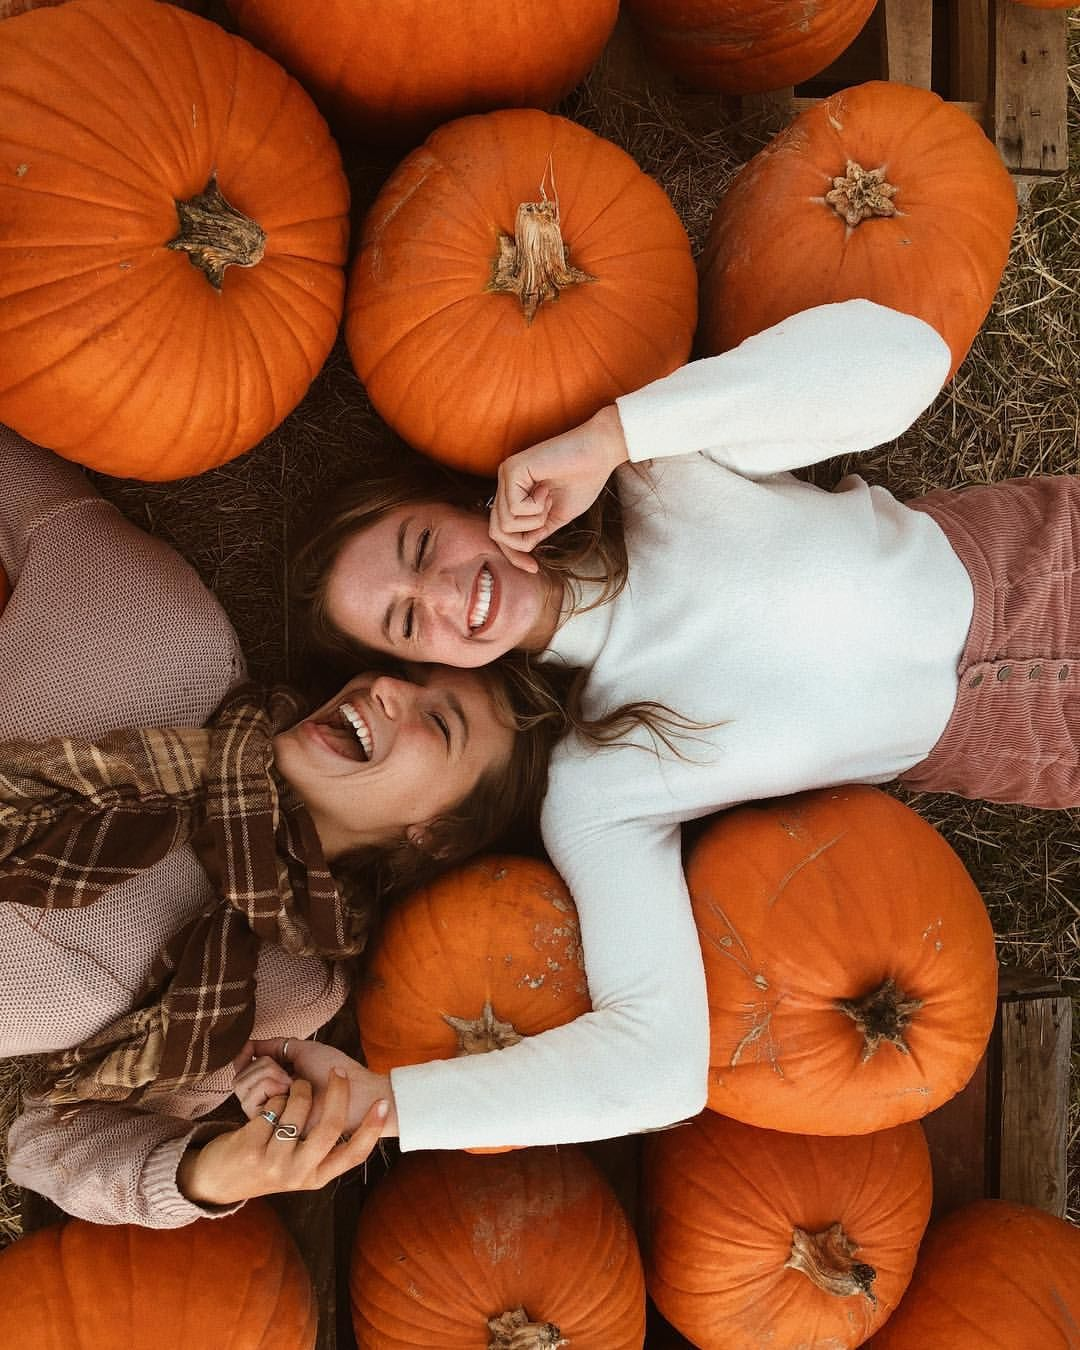 "natalie on Instagram: ""oh my gourd???? it's pretty chilly????"" #pumpkinpatch"